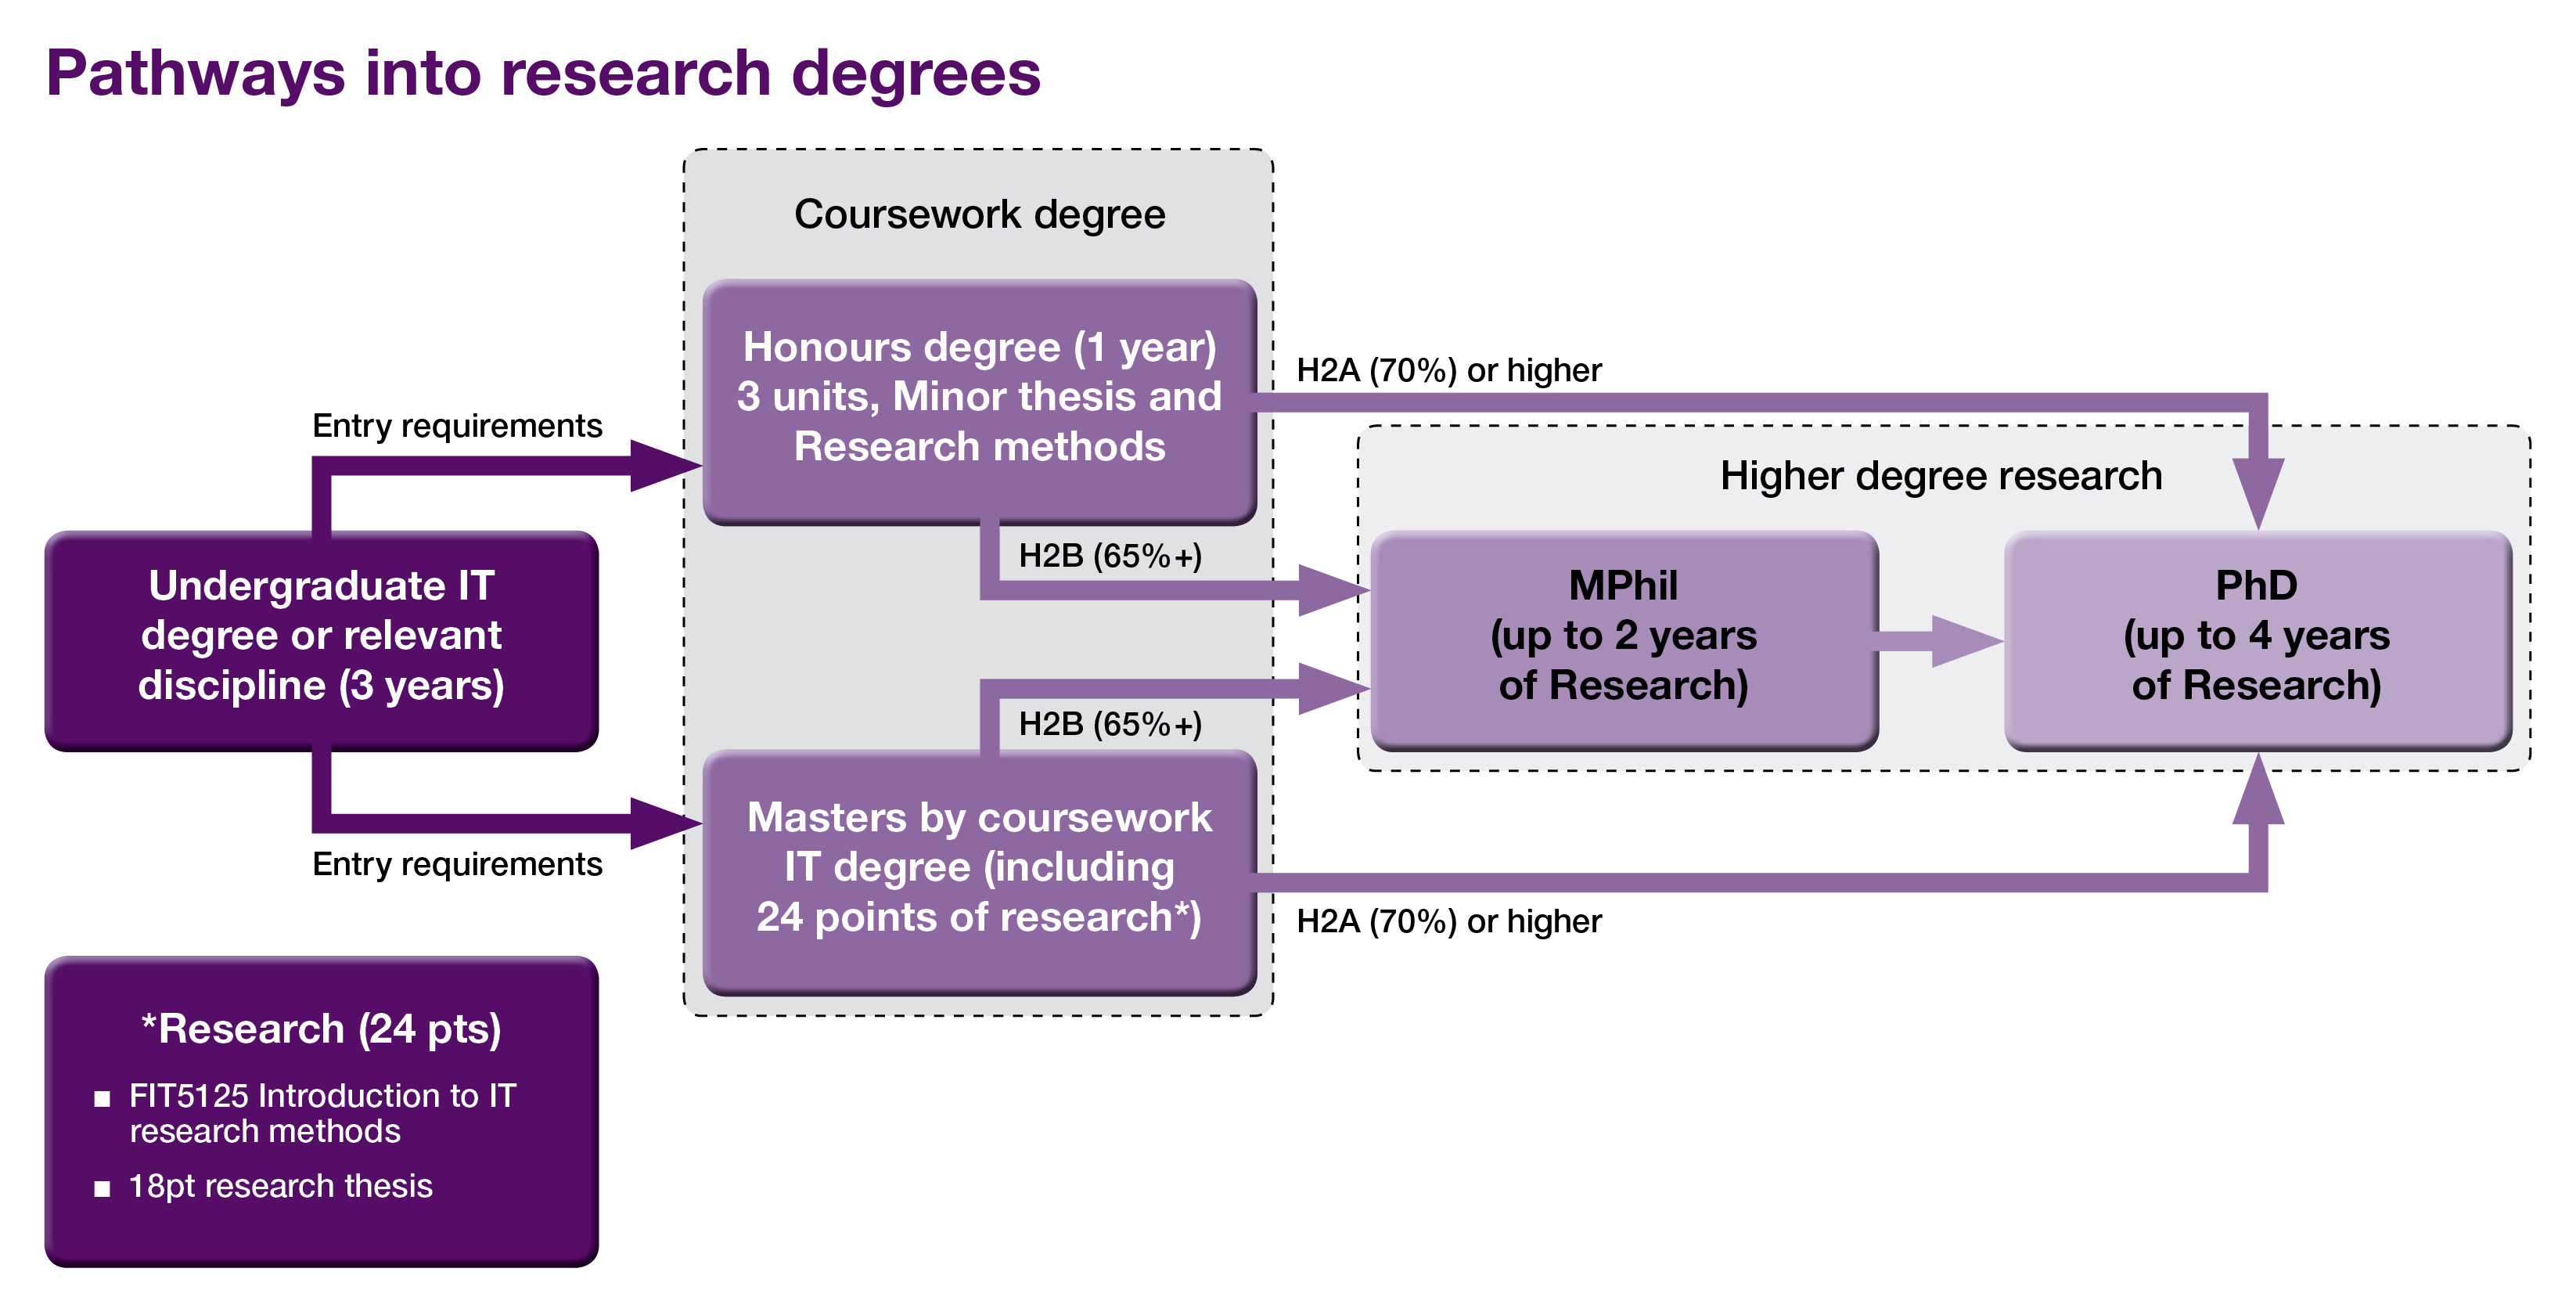 masters degree coursework vs research Damn good illustration for bachelors vs masters vs phd - explained in pictures learn the difference between bachelors, masters and phd degree.